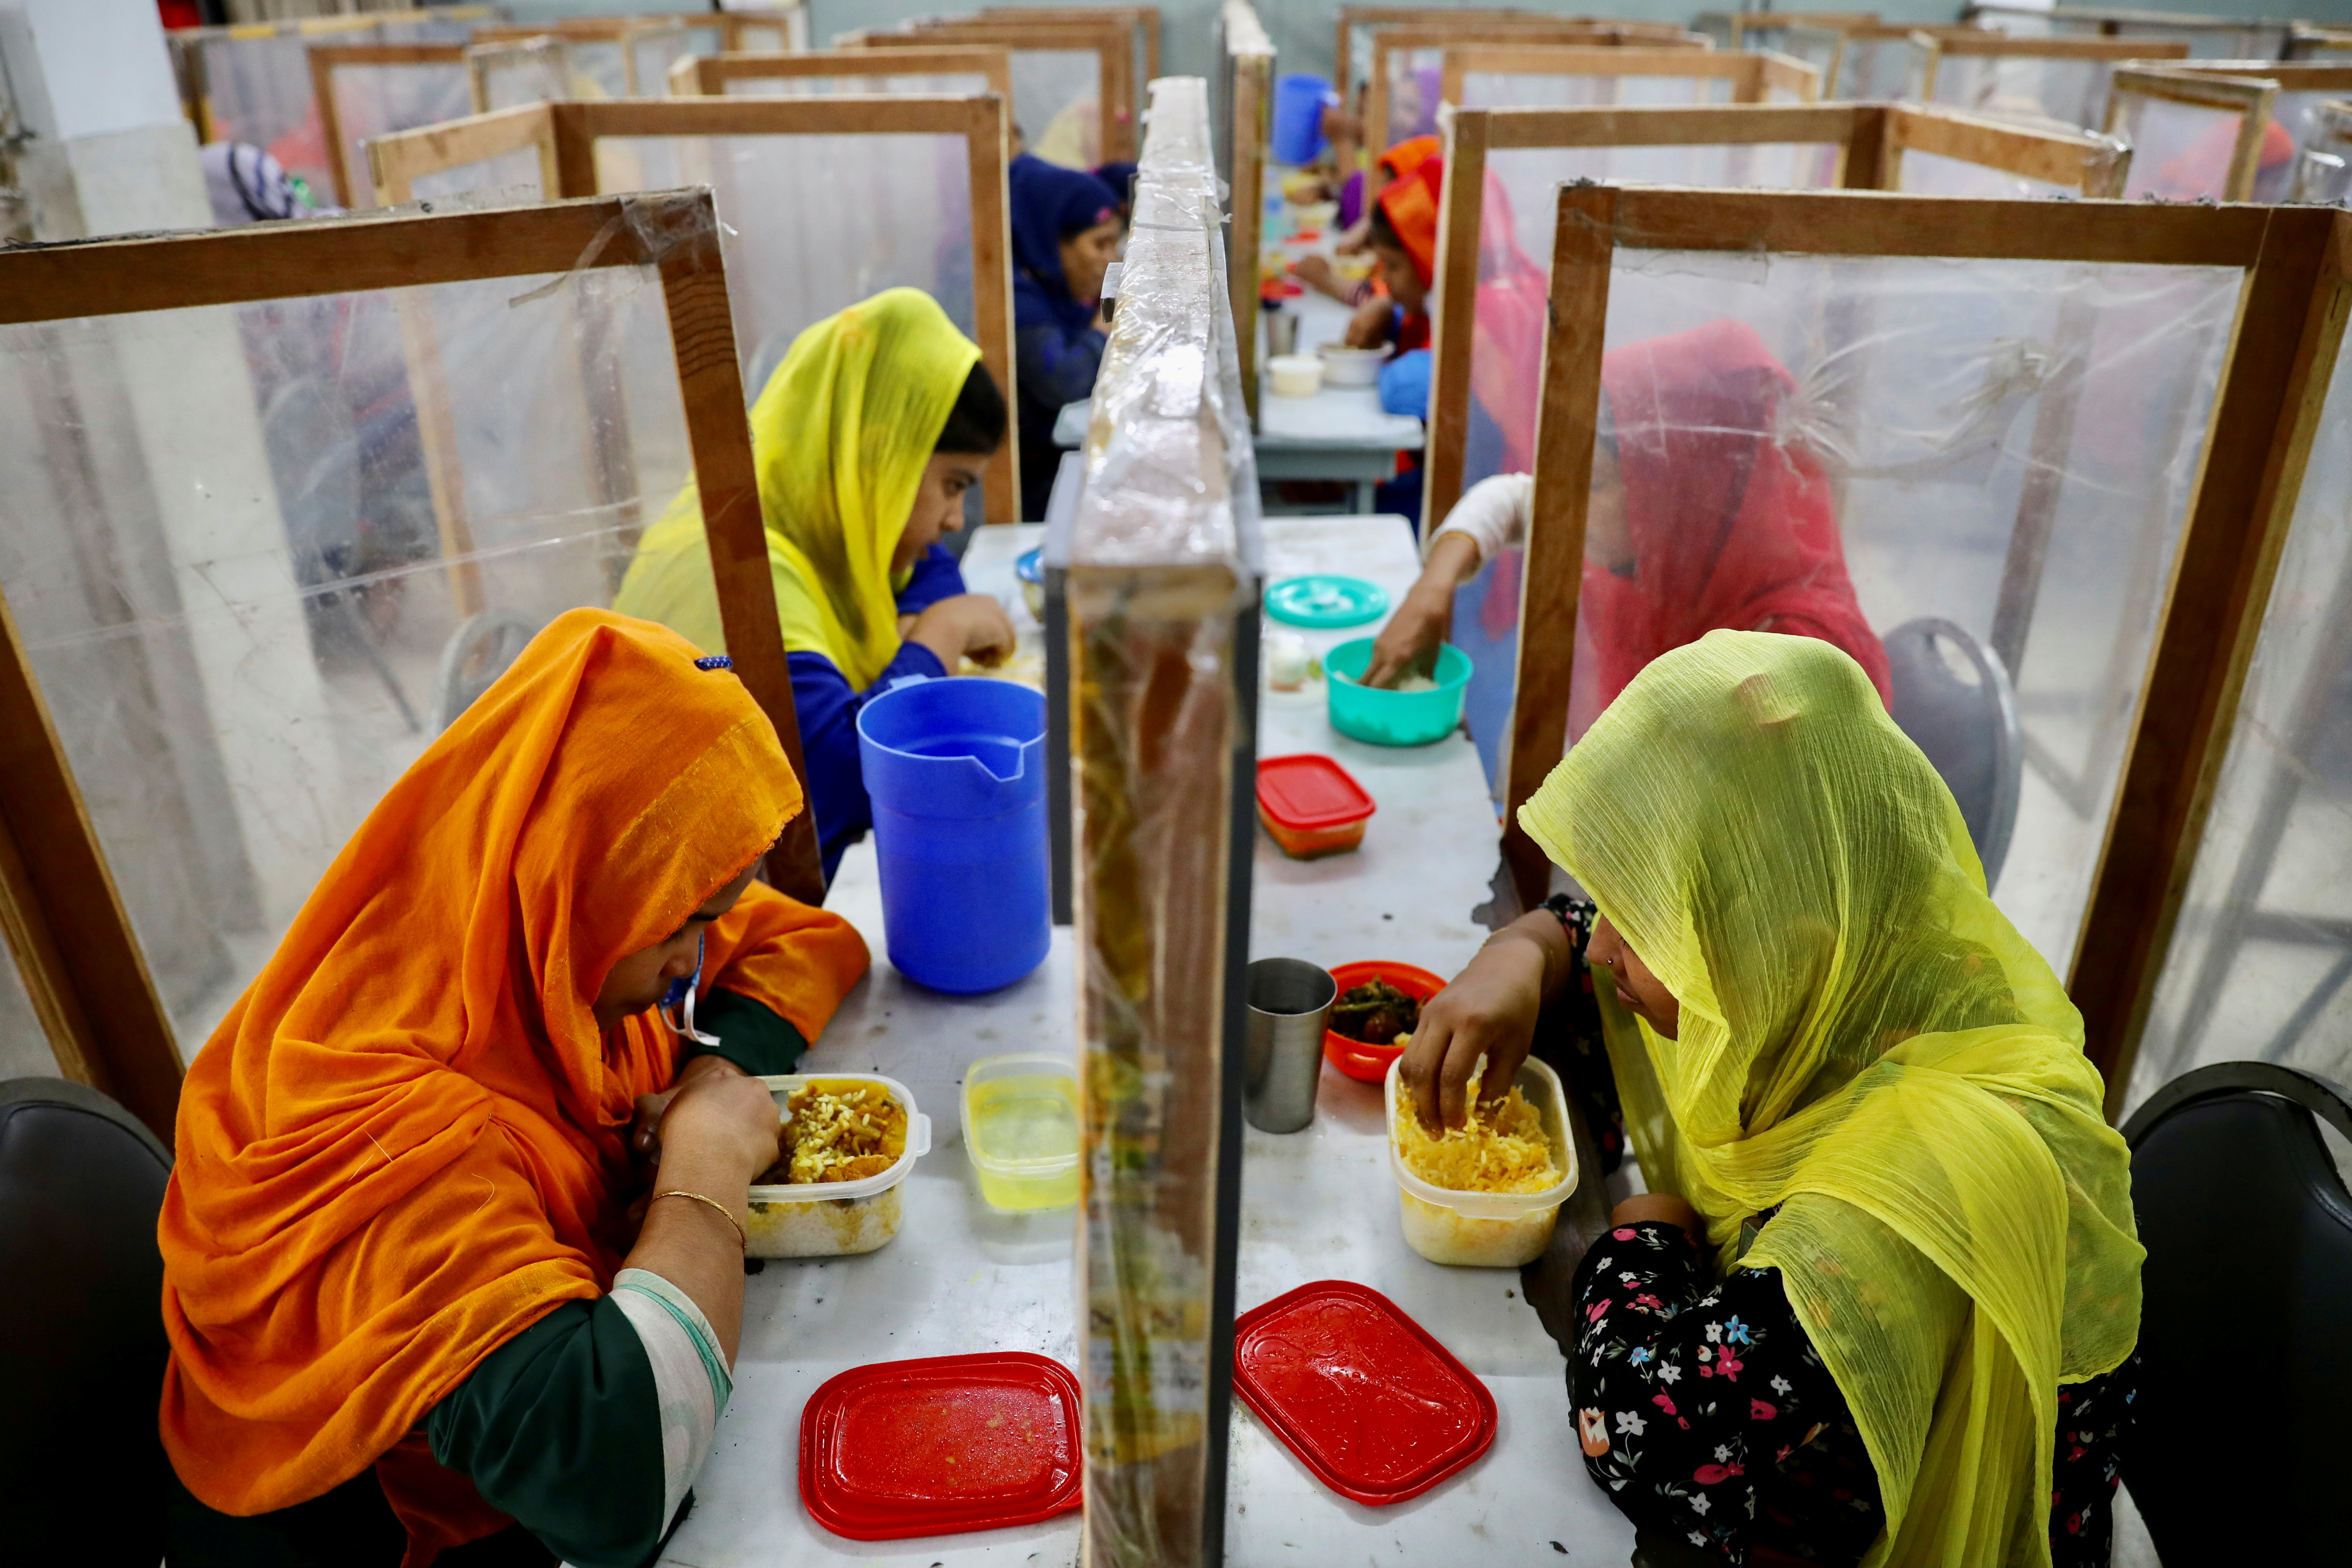 Employees dine between polythene sheets, as a safety measure to reduce the spread of coronavirus disease (COVID-19), at The Civil Engineering Limited garment factory in Dhaka, Bangladesh, August 17, 2021. REUTERS/Mohammad Ponir Hossain     TPX IMAGES OF THE DAY